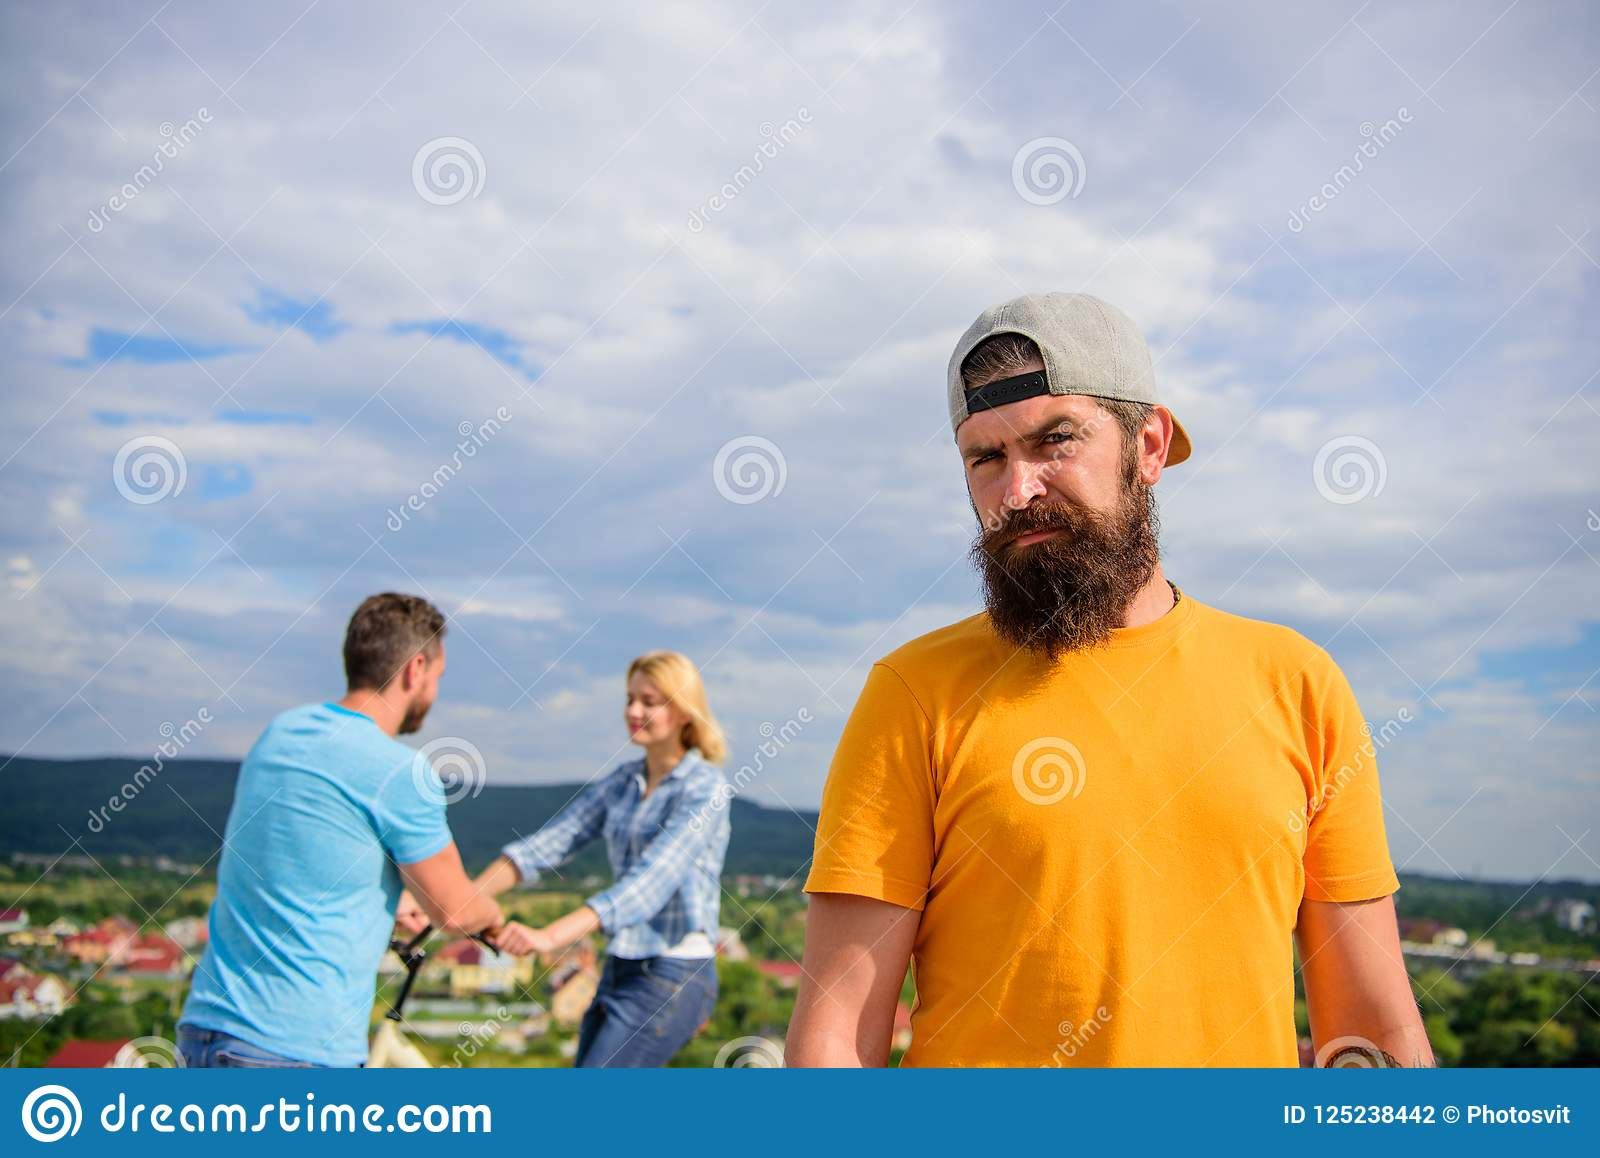 No romantic in his life. Guy adult still lonely while friends happy family life. Hipster sad face in front of couple in